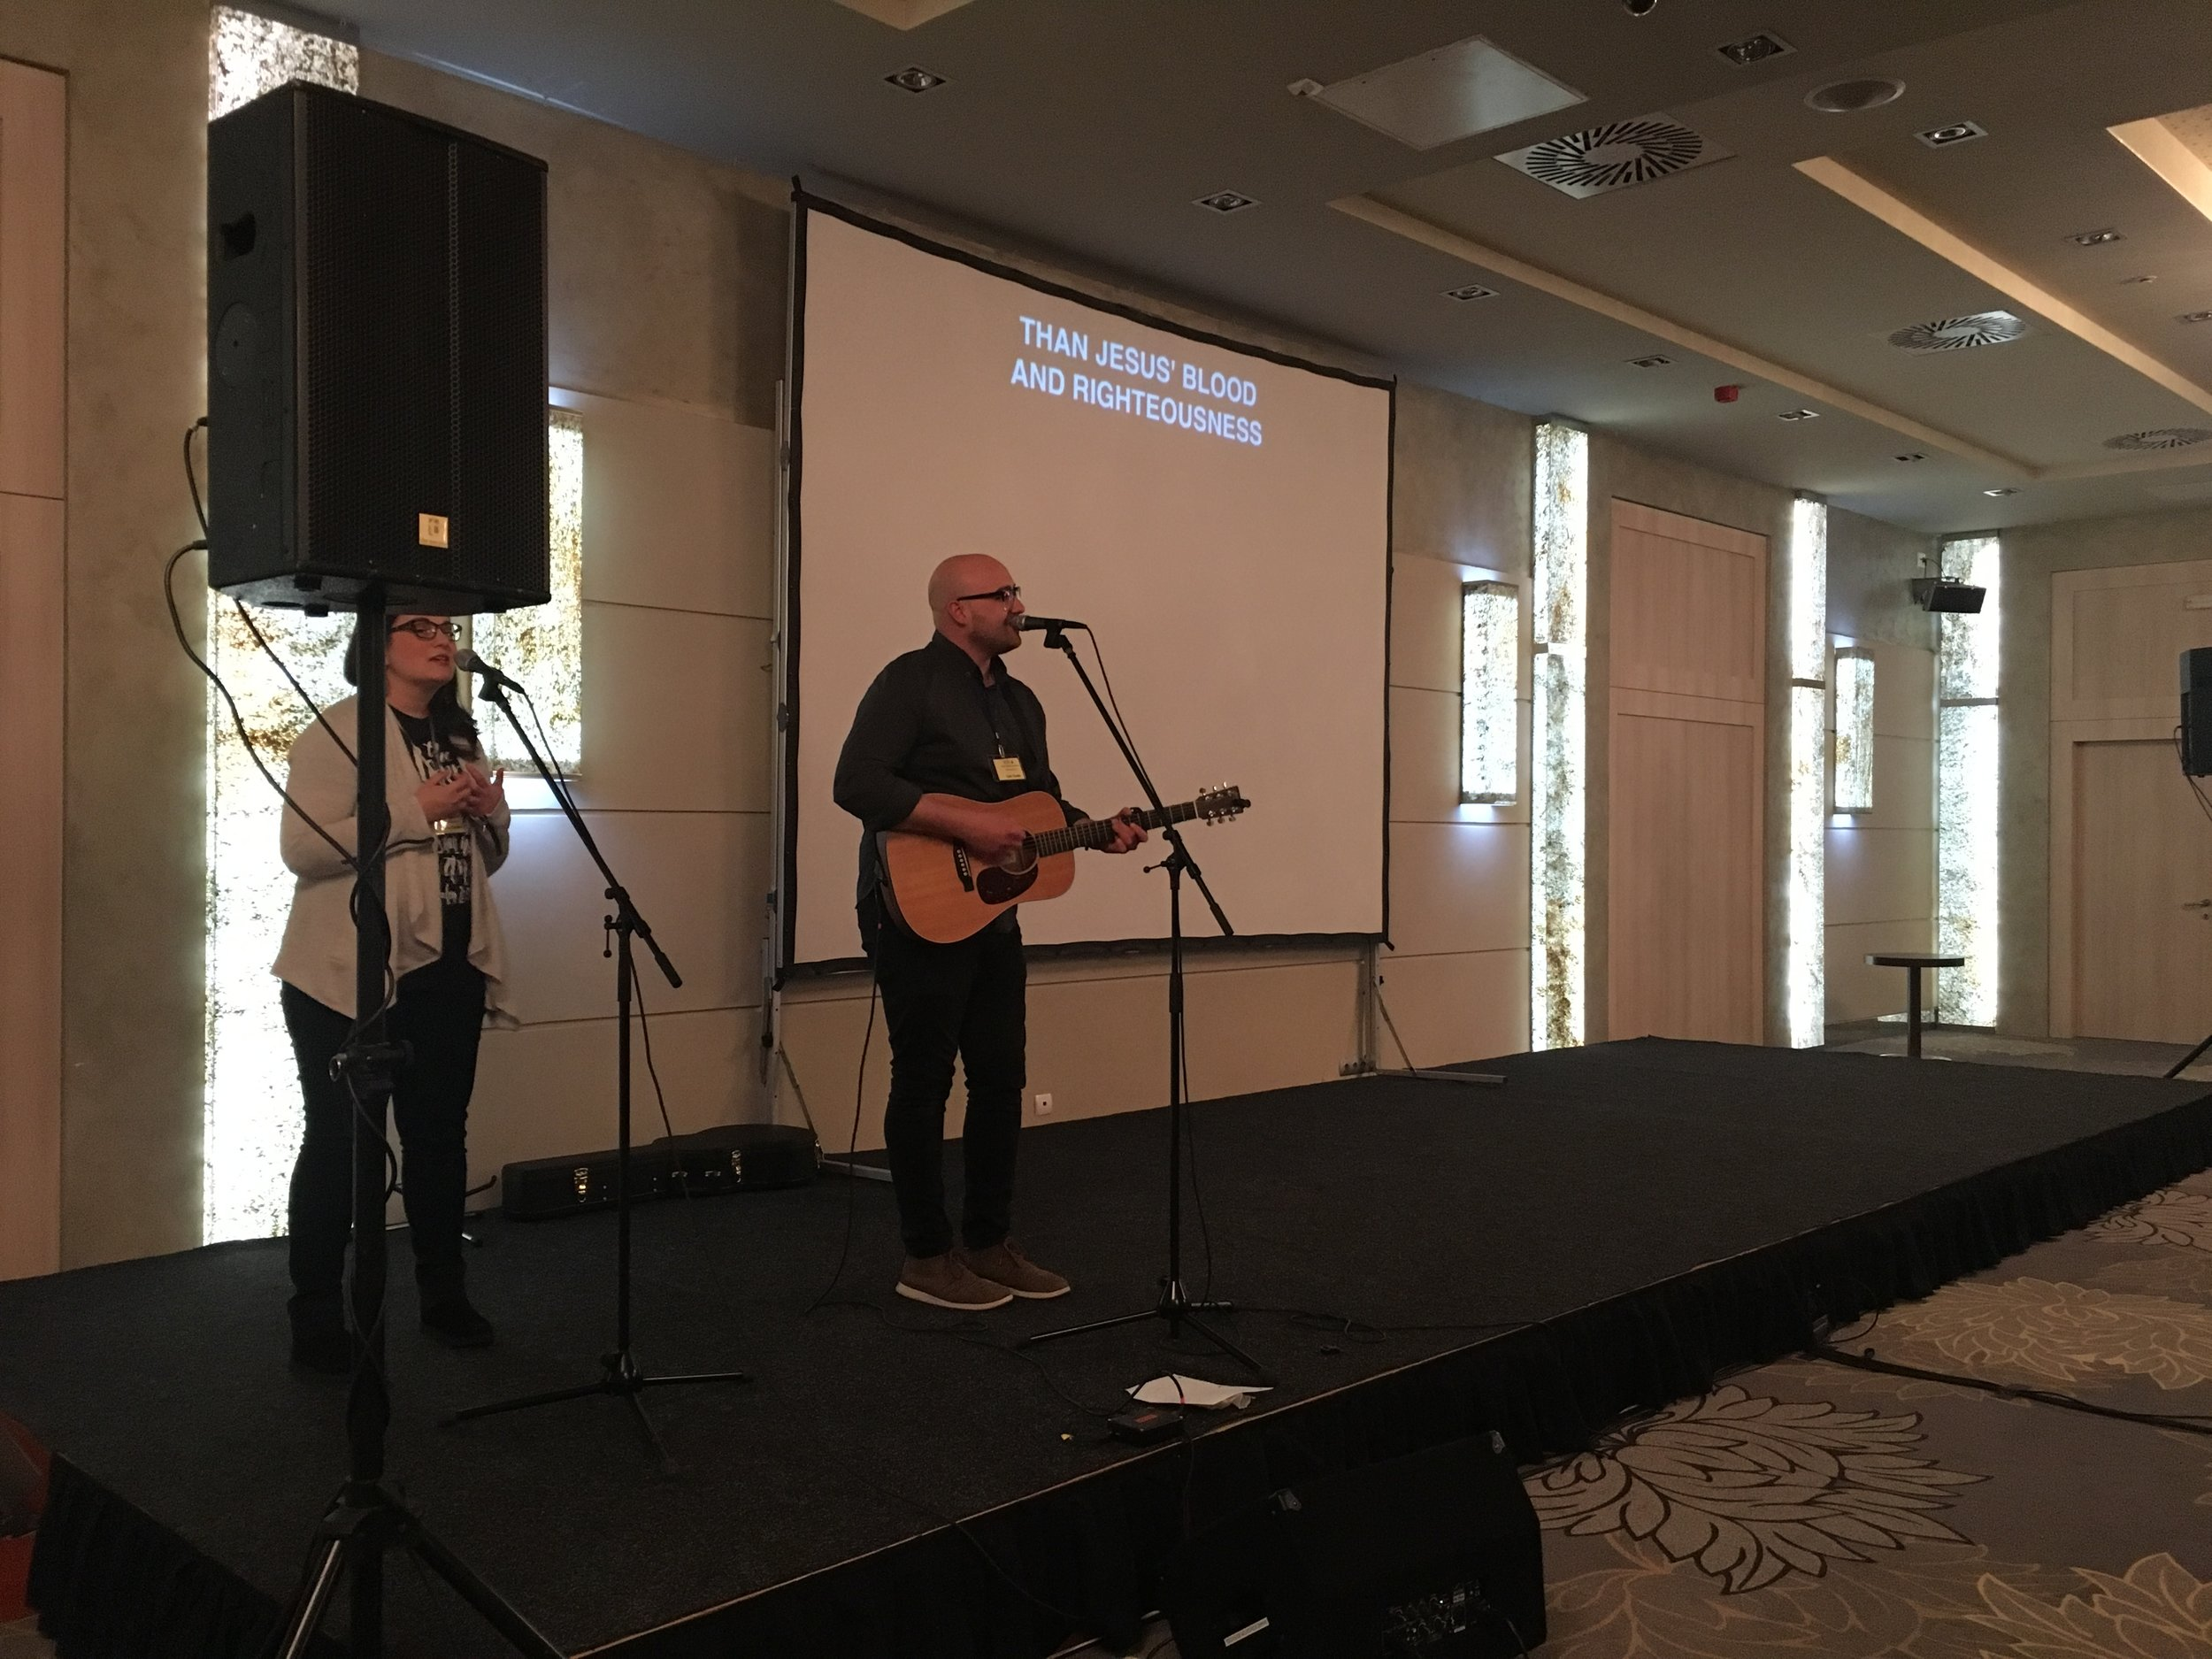 Worship at Share was sweet.